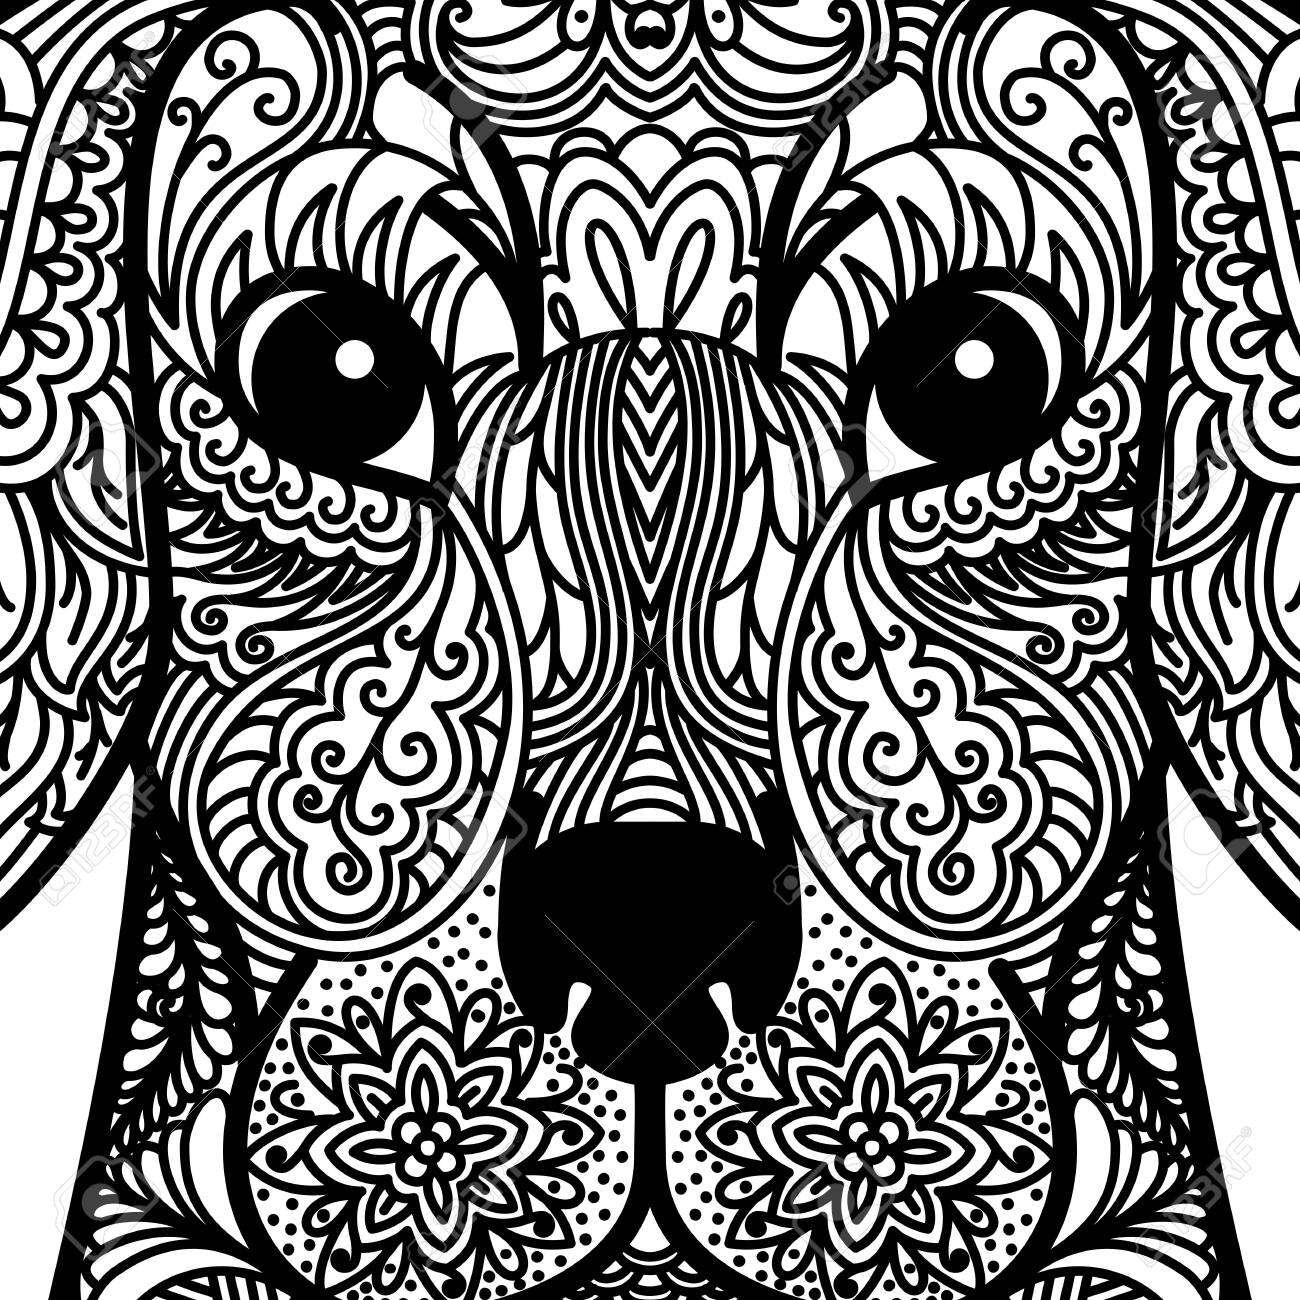 - Patterned Head Of Dog. Tattoo Design. Coloring Page. It May Be